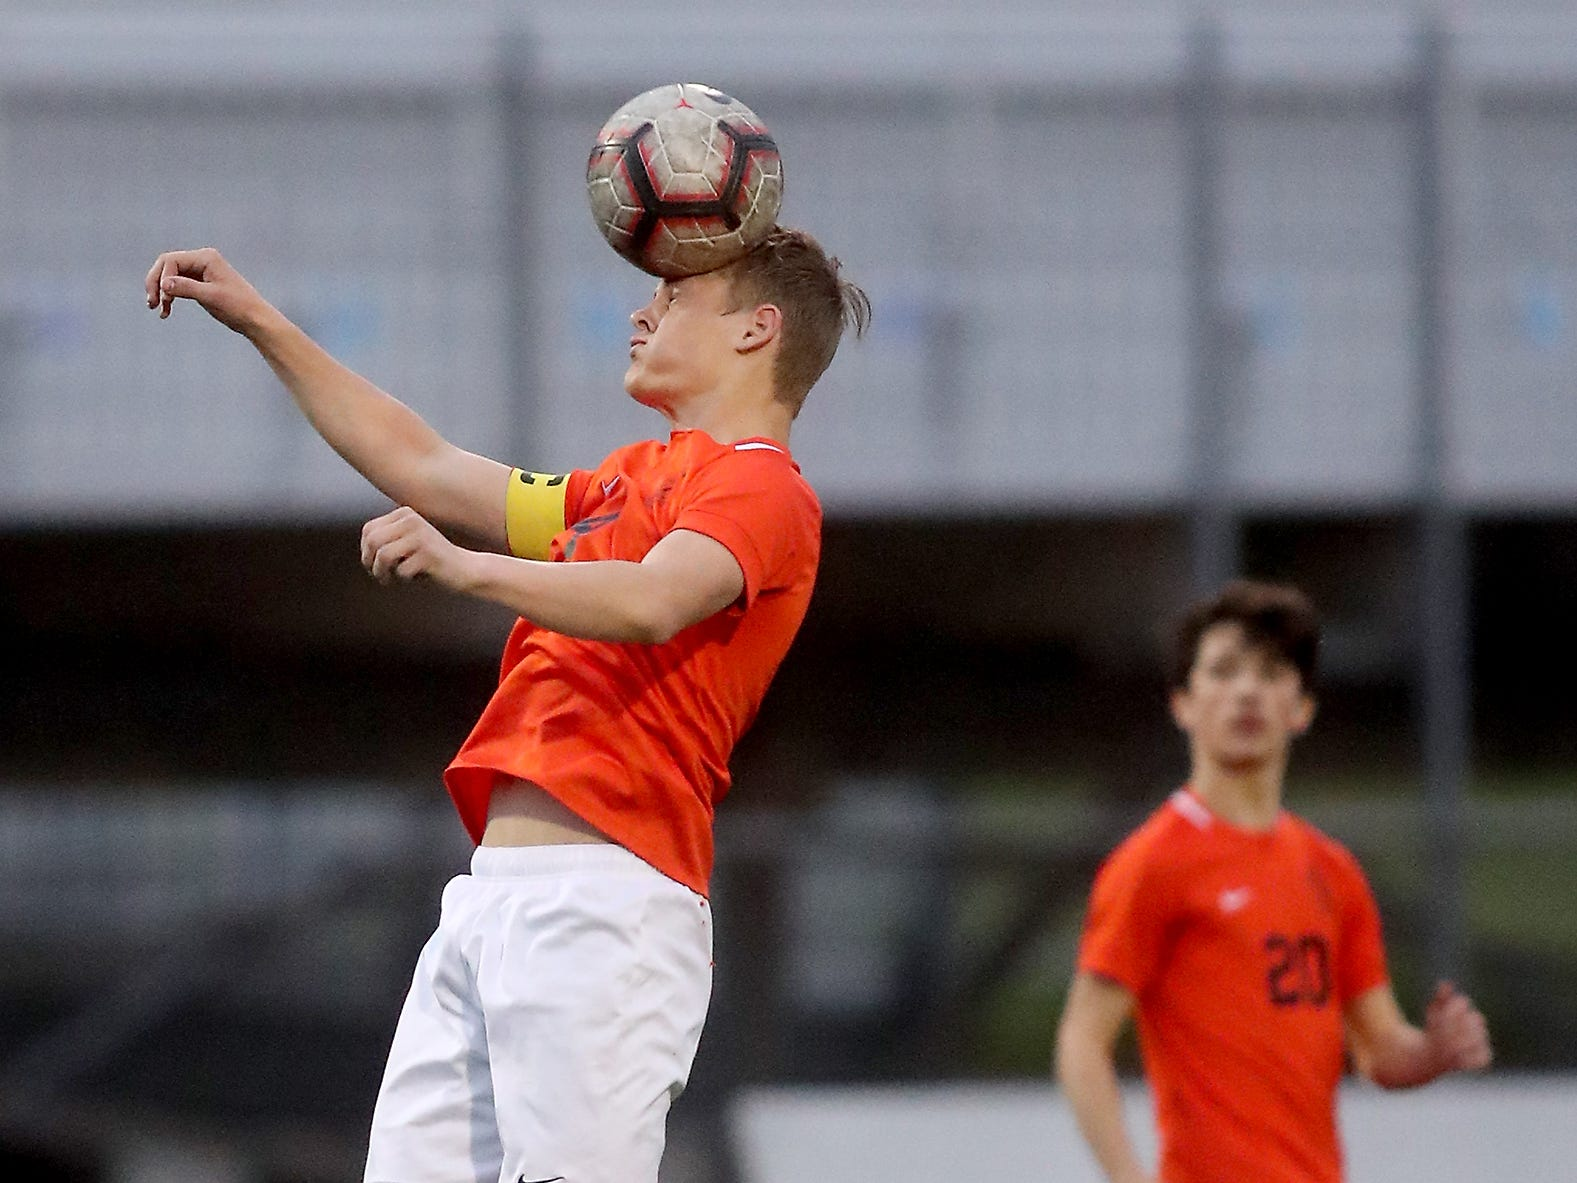 Central Kitsap's Carter Nilsen heads the ball against North Thurston at Silverdale Stadium on Thursday, May 2, 2019.